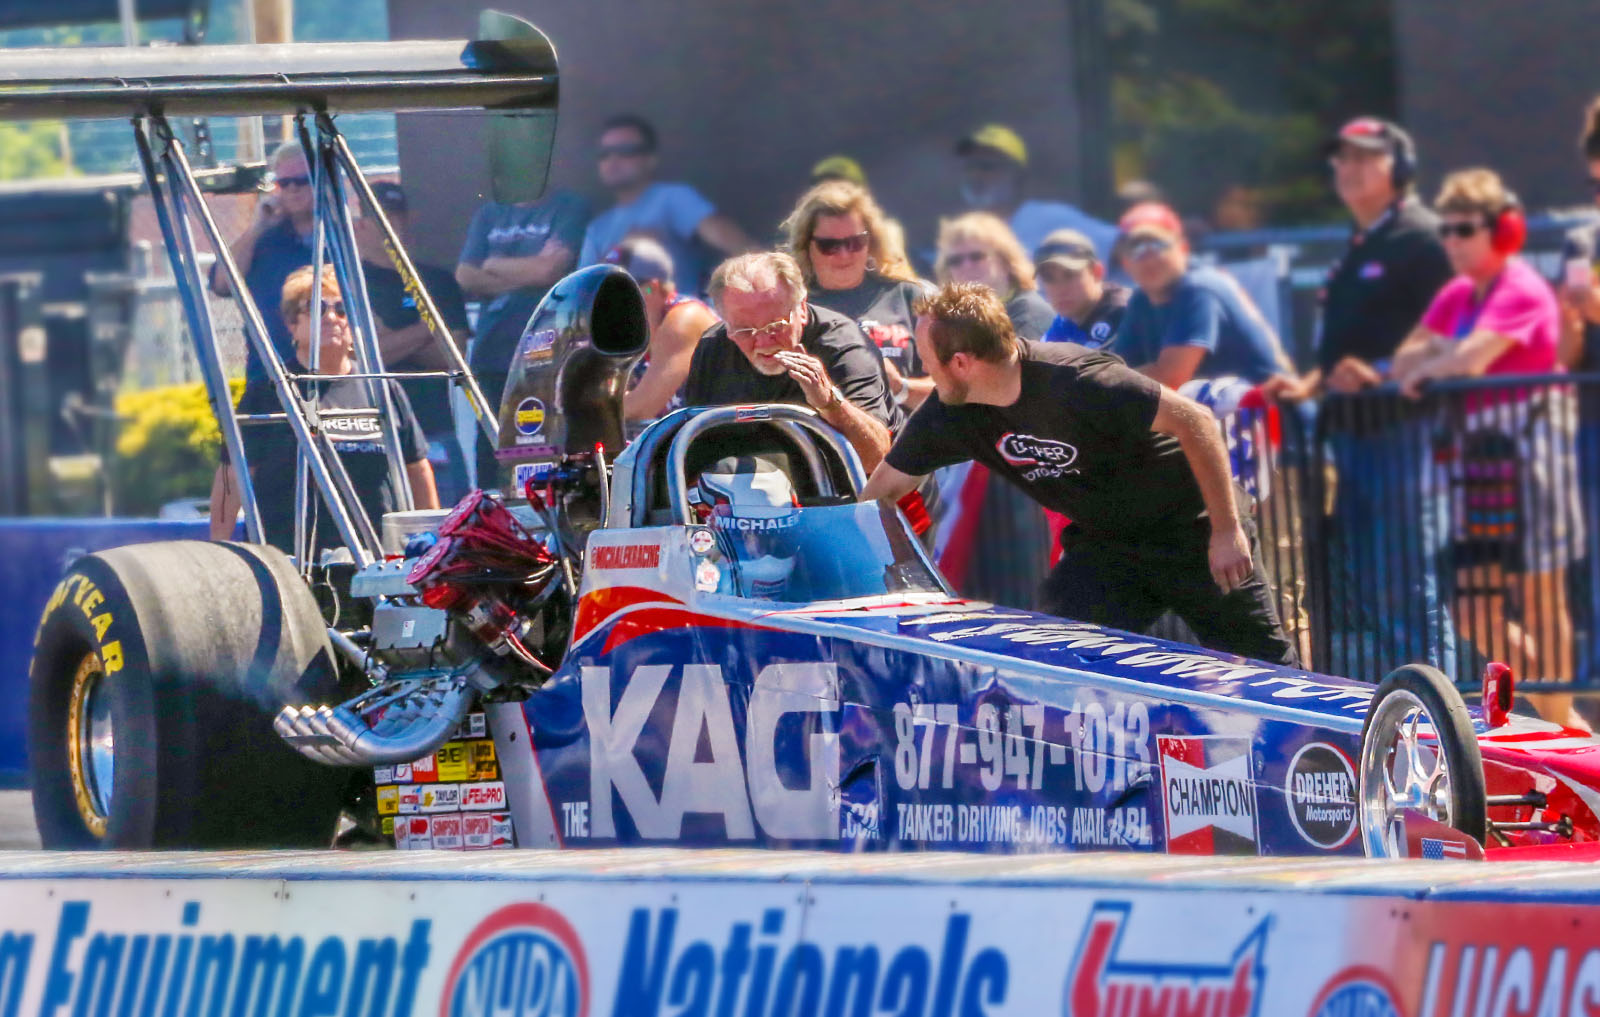 Michalek Brothers Racing will again partner with Randy and Jared Dreher of Dreher Motorsports to field the KAG A/fuel dragster at Charlotte. (Photo credit: David Smith)